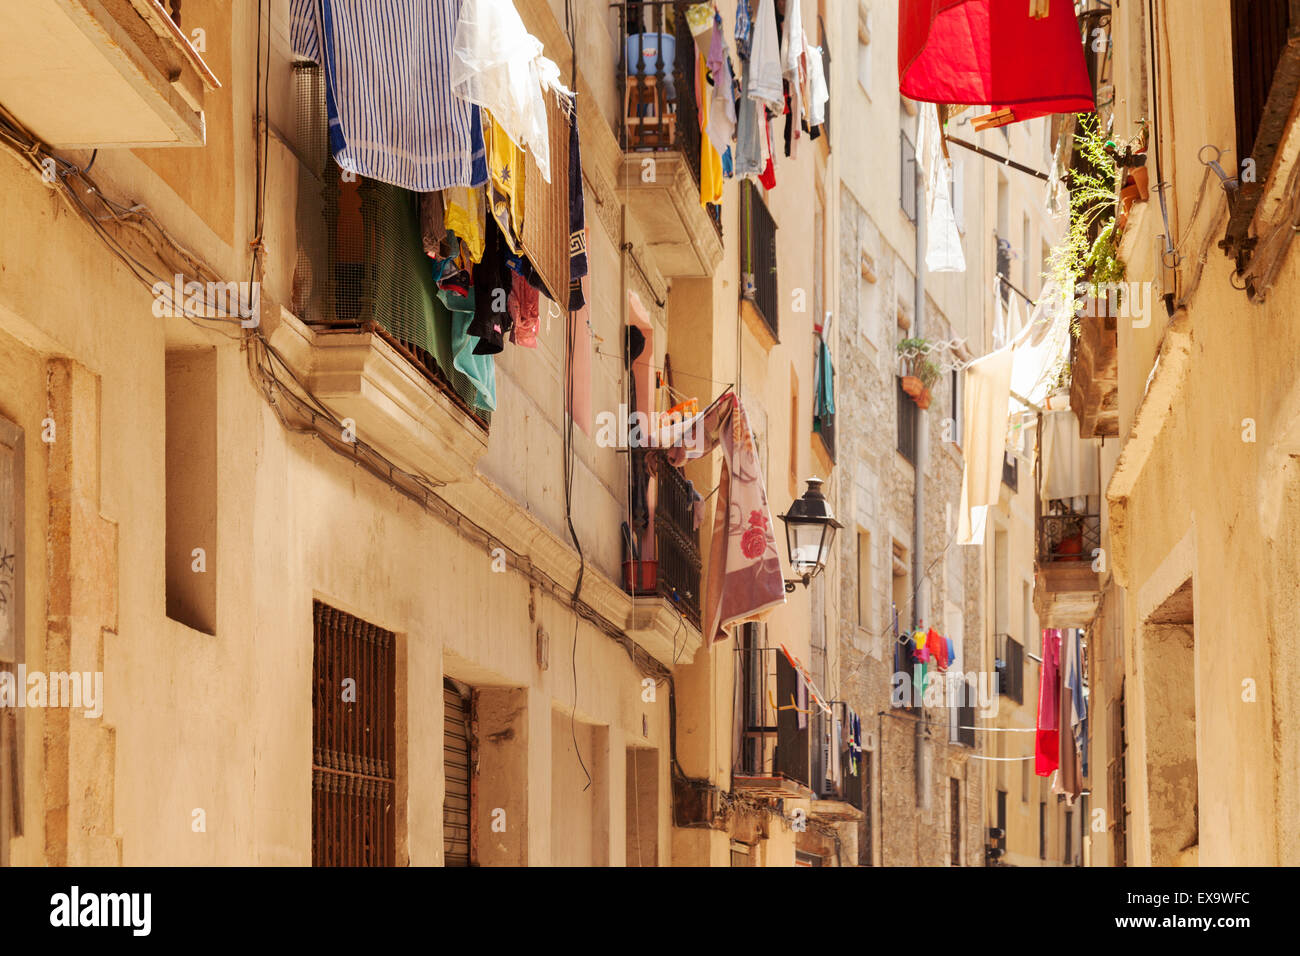 Barcelona clothes washing hanging above the street, Barri Gotic ( Gothic Quarter ), Barcelona Spain - Stock Image